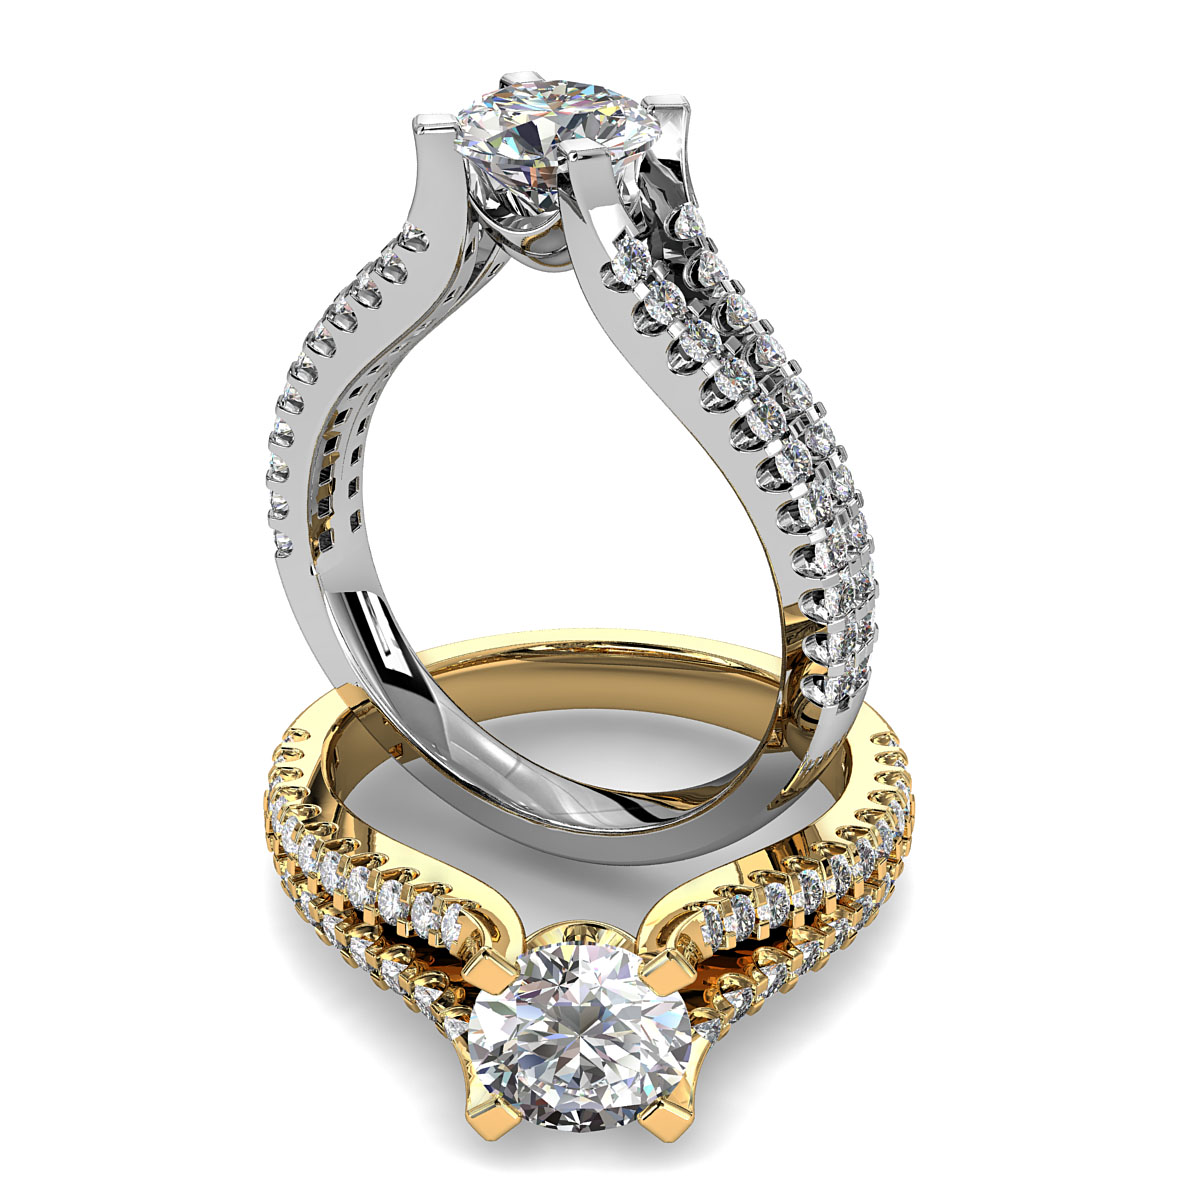 Round Brilliant Cut Diamond Solitaire Engagement Ring, 4 Square Claw Set on a Split Cut Claw Band.